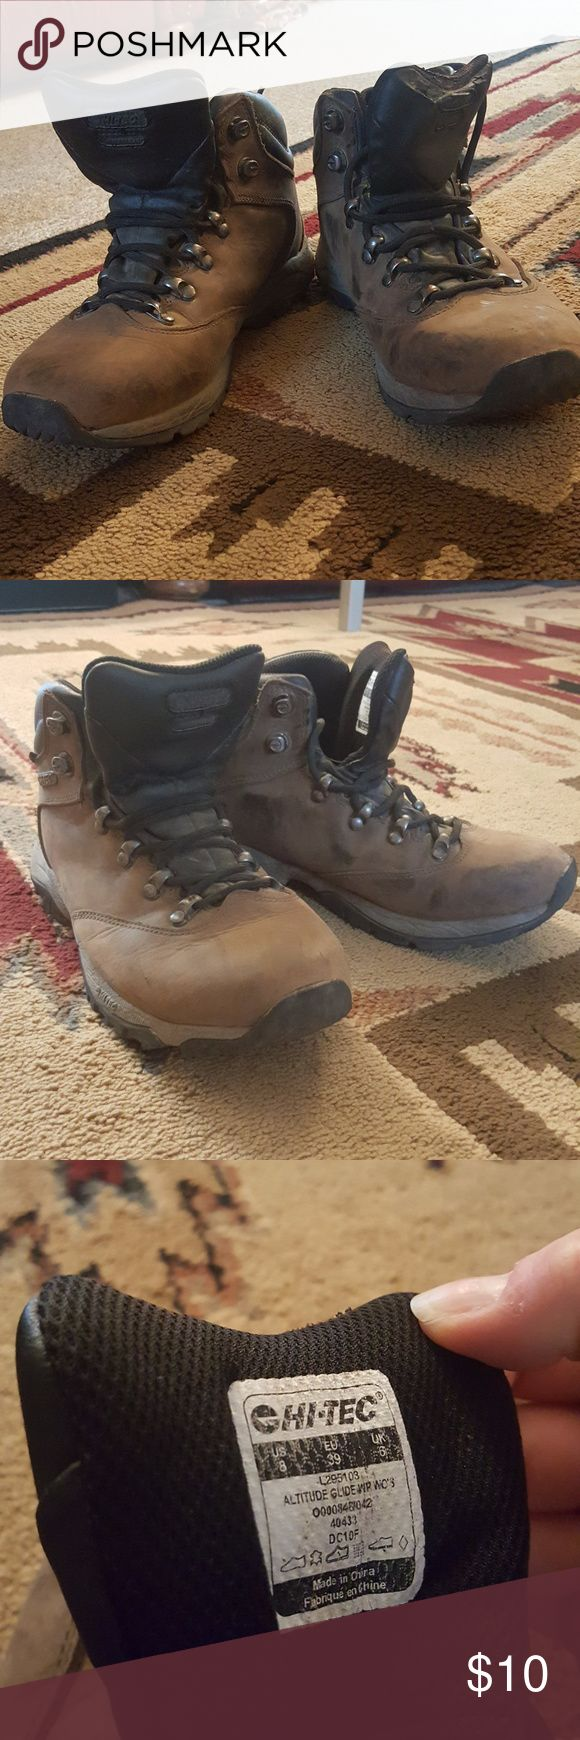 Hi-Tec Hiking Boots Hi-Tec brand hiking boots, brown in color. In good condition, soles look brand new! Slight tear on the tongue of the left boot. Size 8, but fits size 8.5. Hi-Tec Shoes